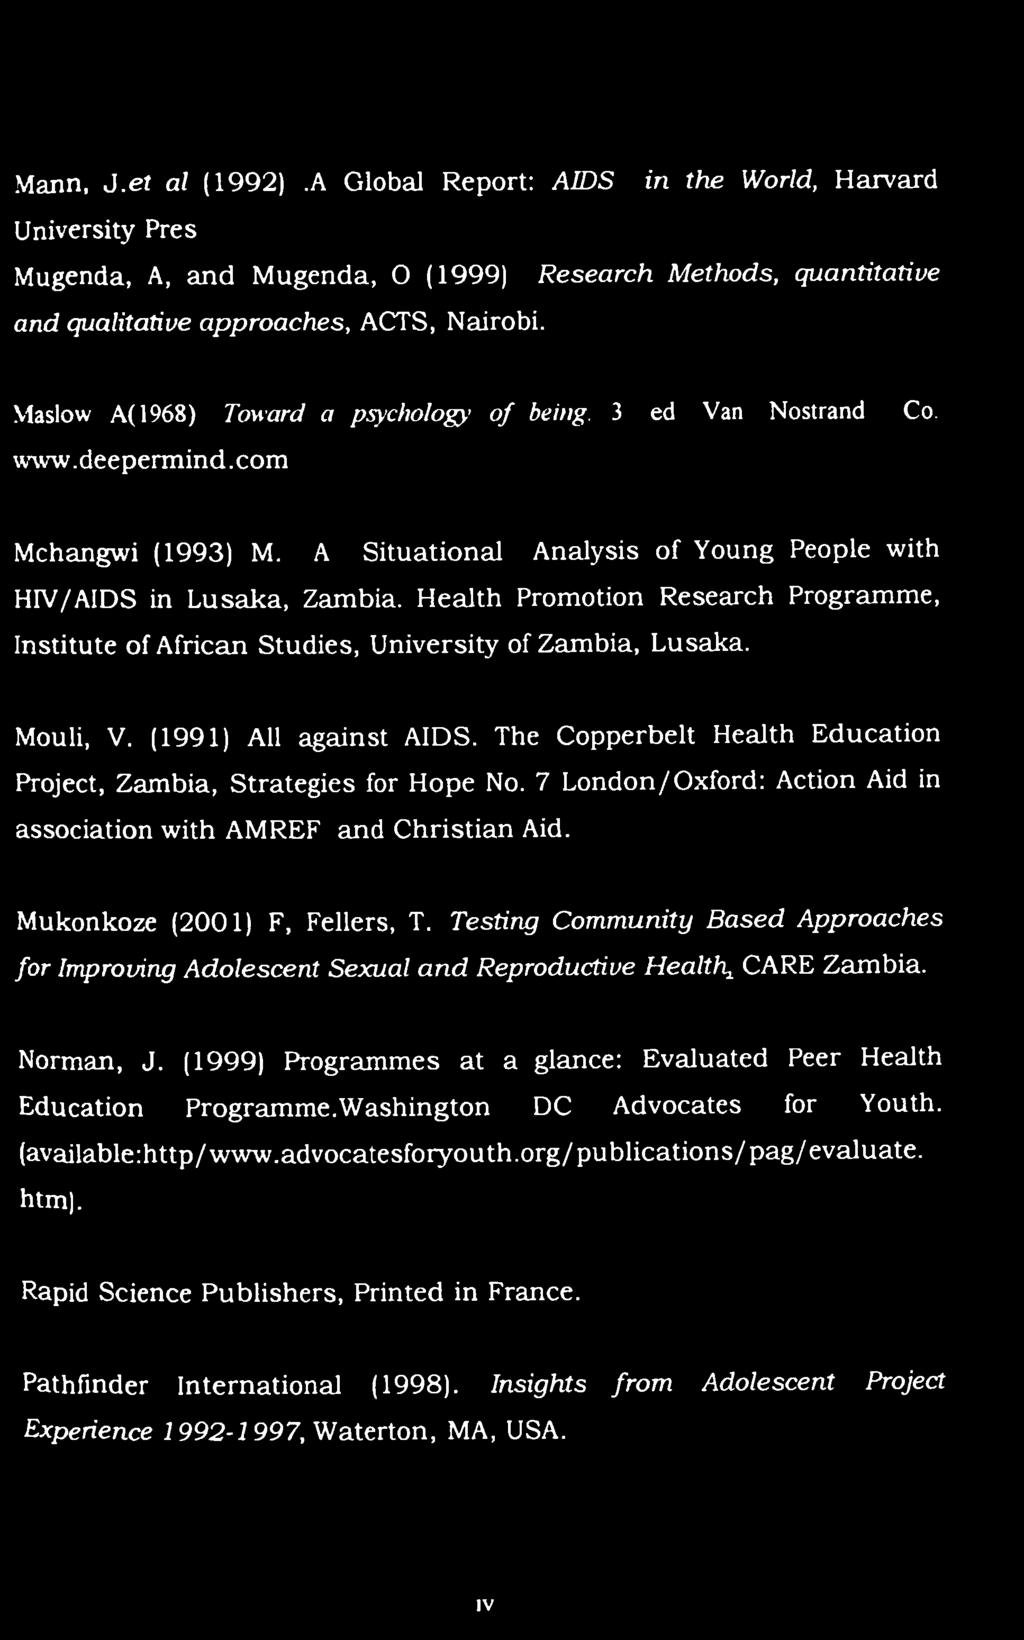 Health Promotion Research Programme, Institute of African Studies, University of Zambia, Lusaka. Mouli, V. (1991) All against AIDS.